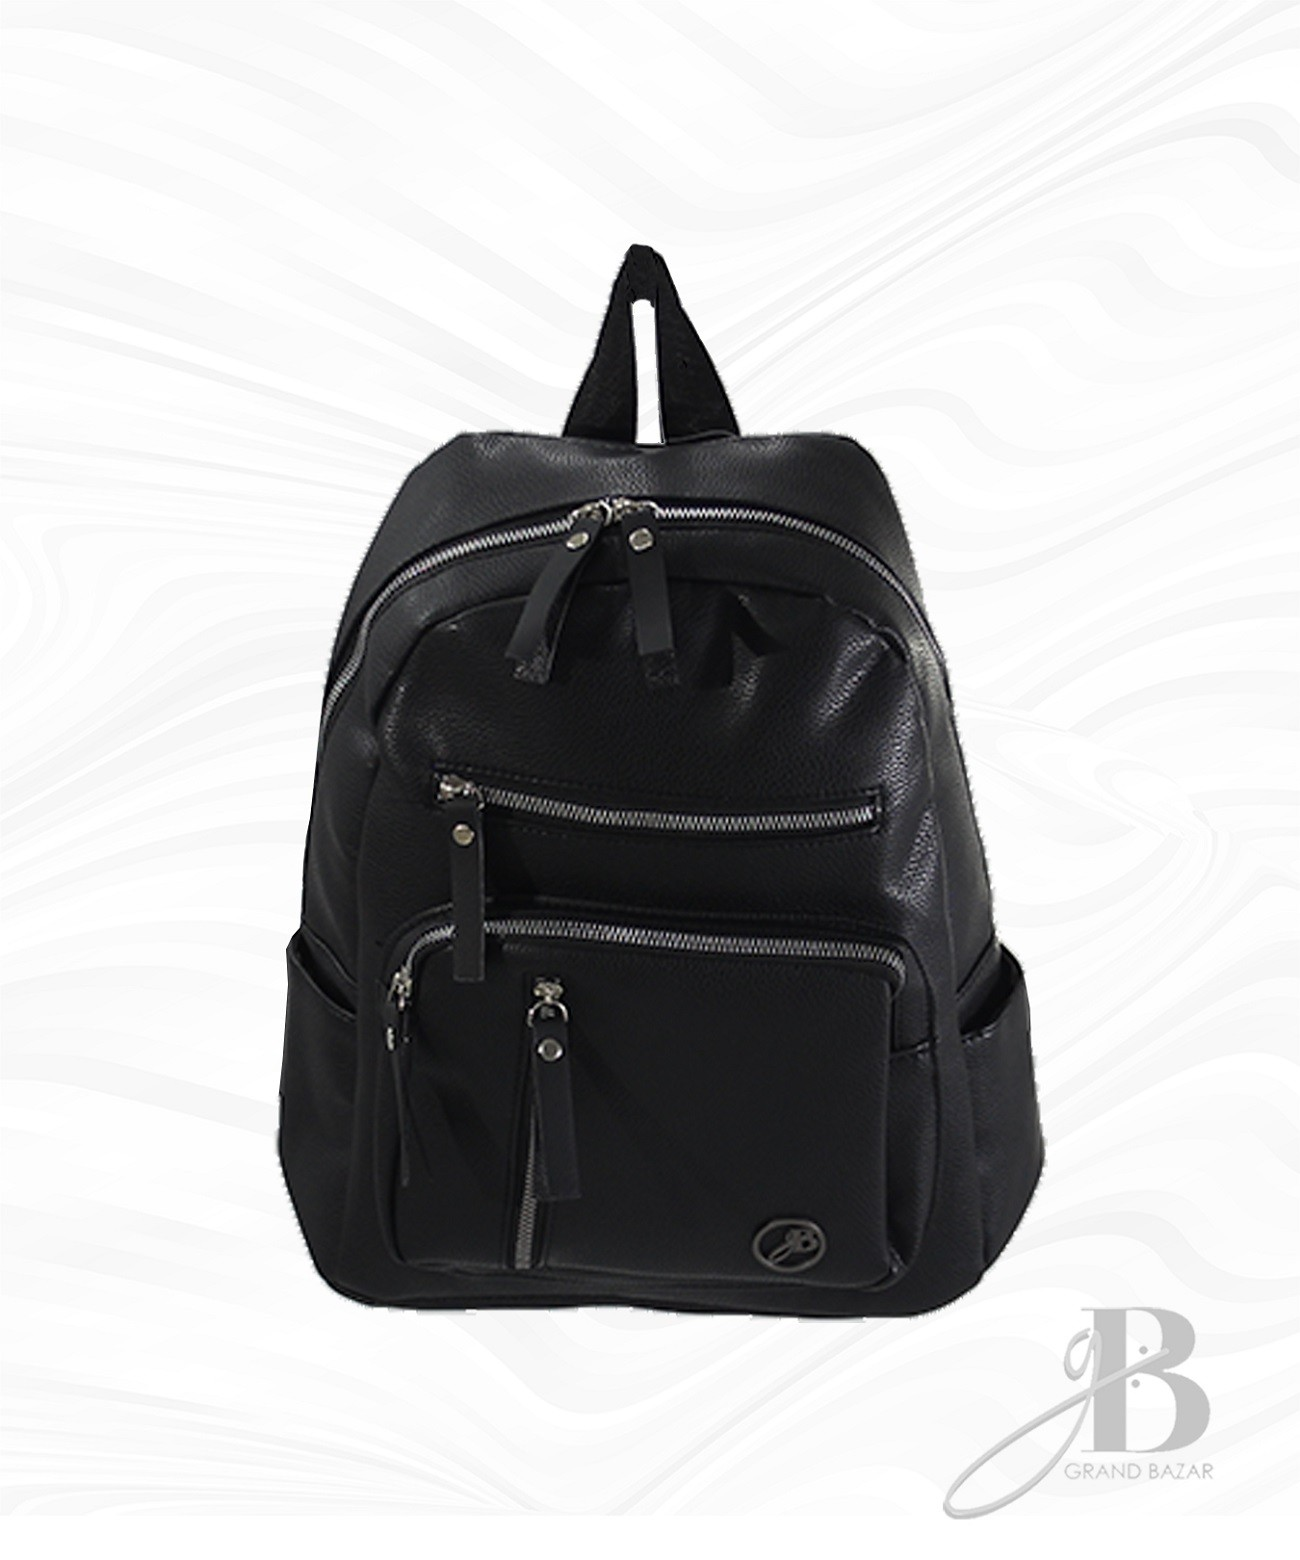 Mochila Gbazar Leather One